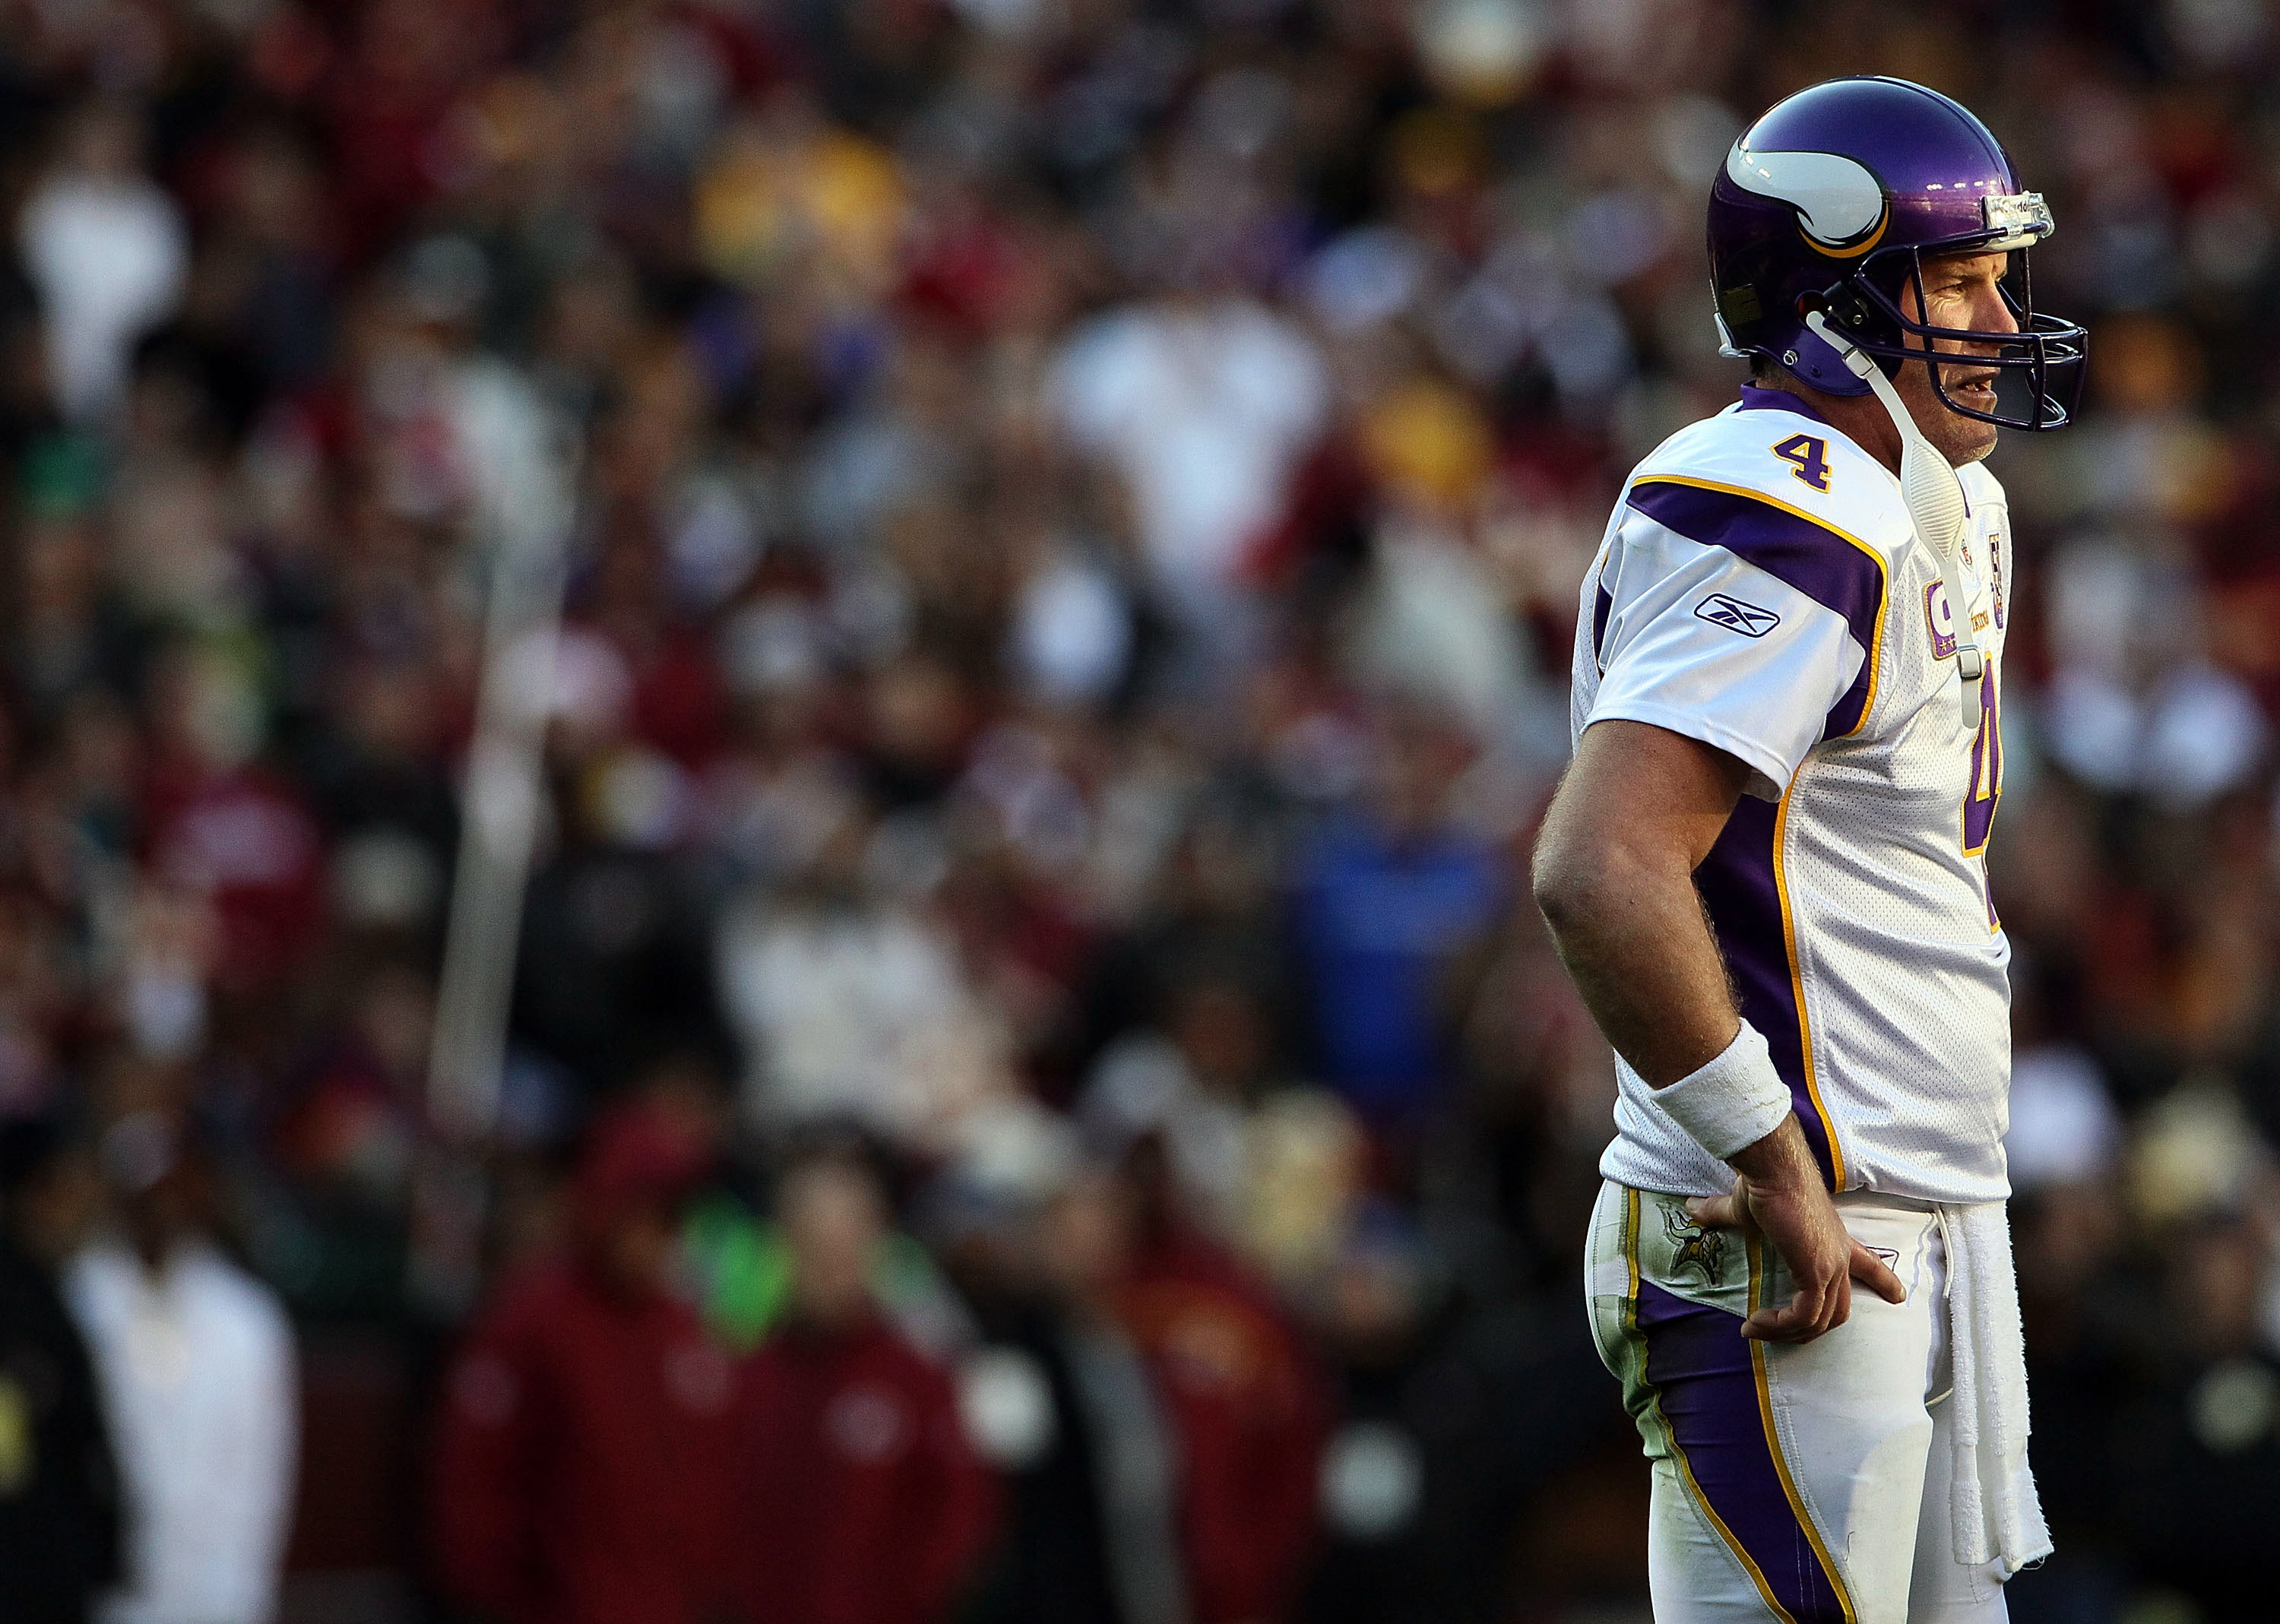 LANDOVER, MD - NOVEMBER 28:  Brett Favre #4 of the Minnesota Vikings against the Washington Redskins at FedExField November 28, 2010 in Landover, Maryland. The Vikings won the game 17-13.  (Photo by Win McNamee/Getty Images)